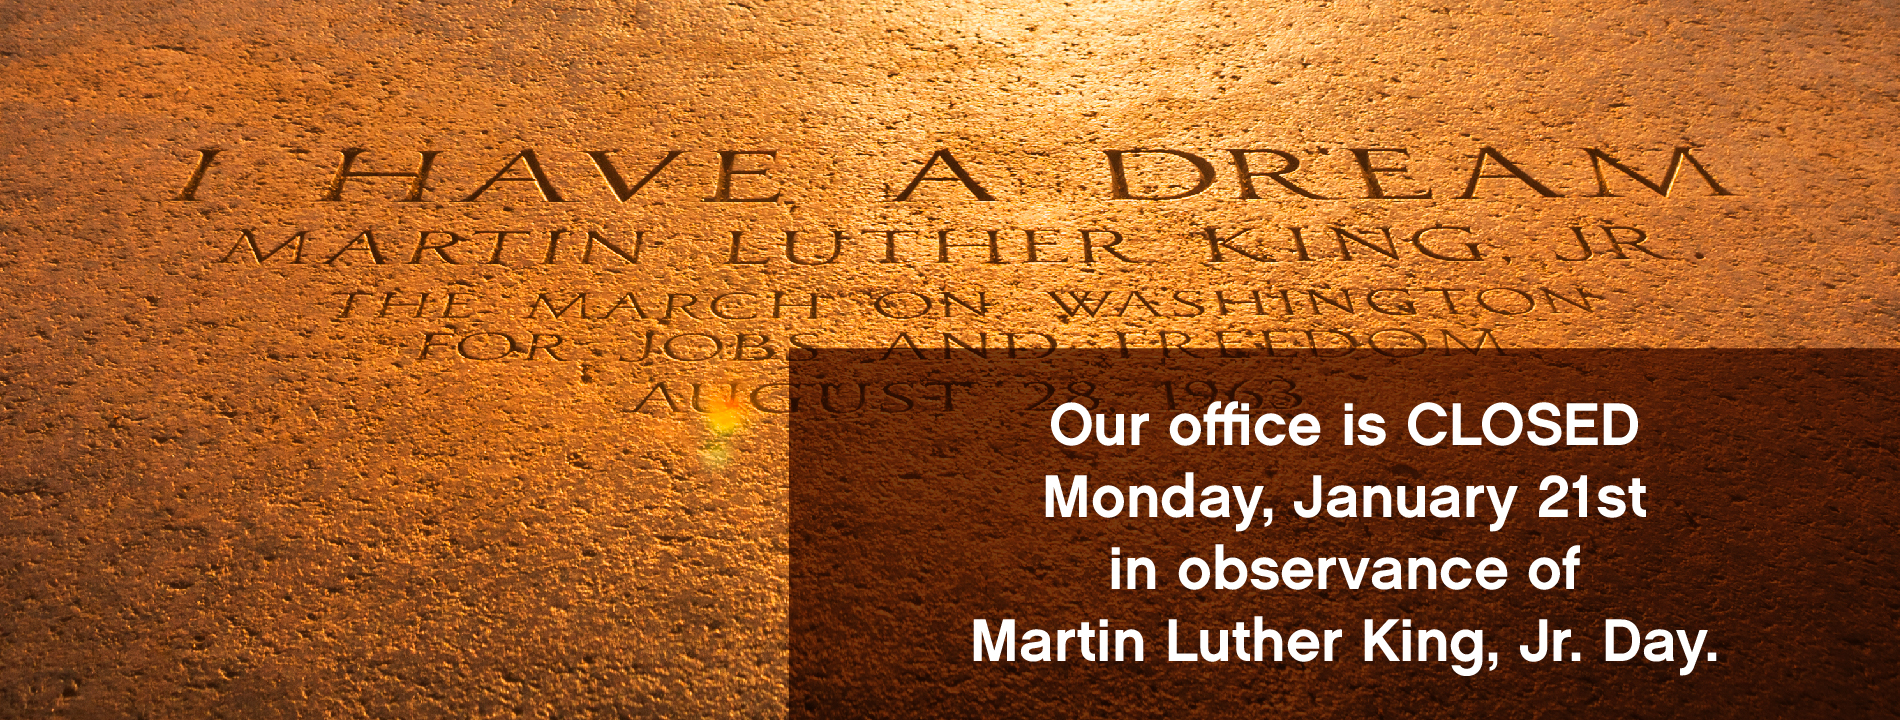 Our office is closed Monday, January 21st in observance of Martin Luther King, Jr., Day